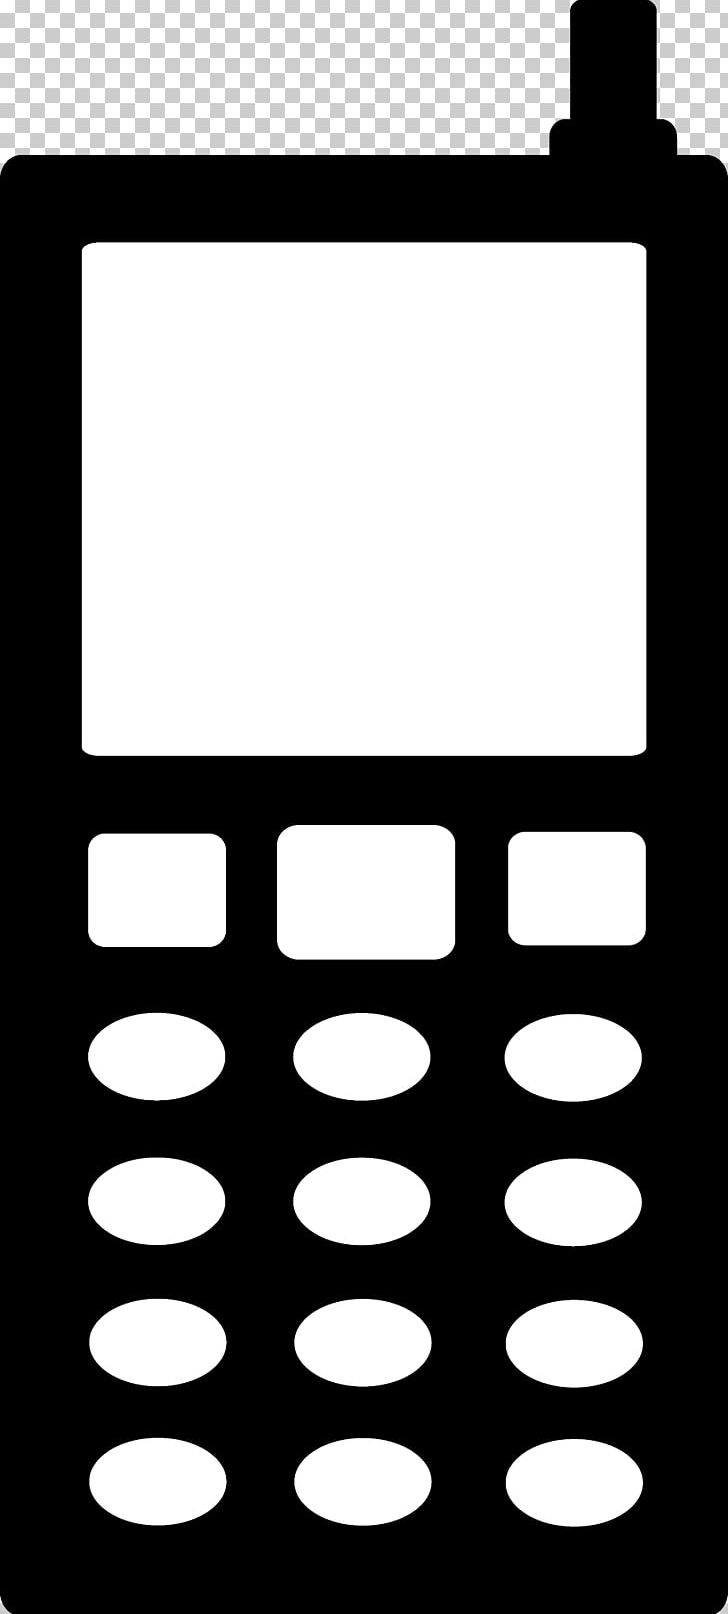 No cell phone clipart black and white free stock Telephone Silhouette PNG, Clipart, Area, Black, Black And ... free stock